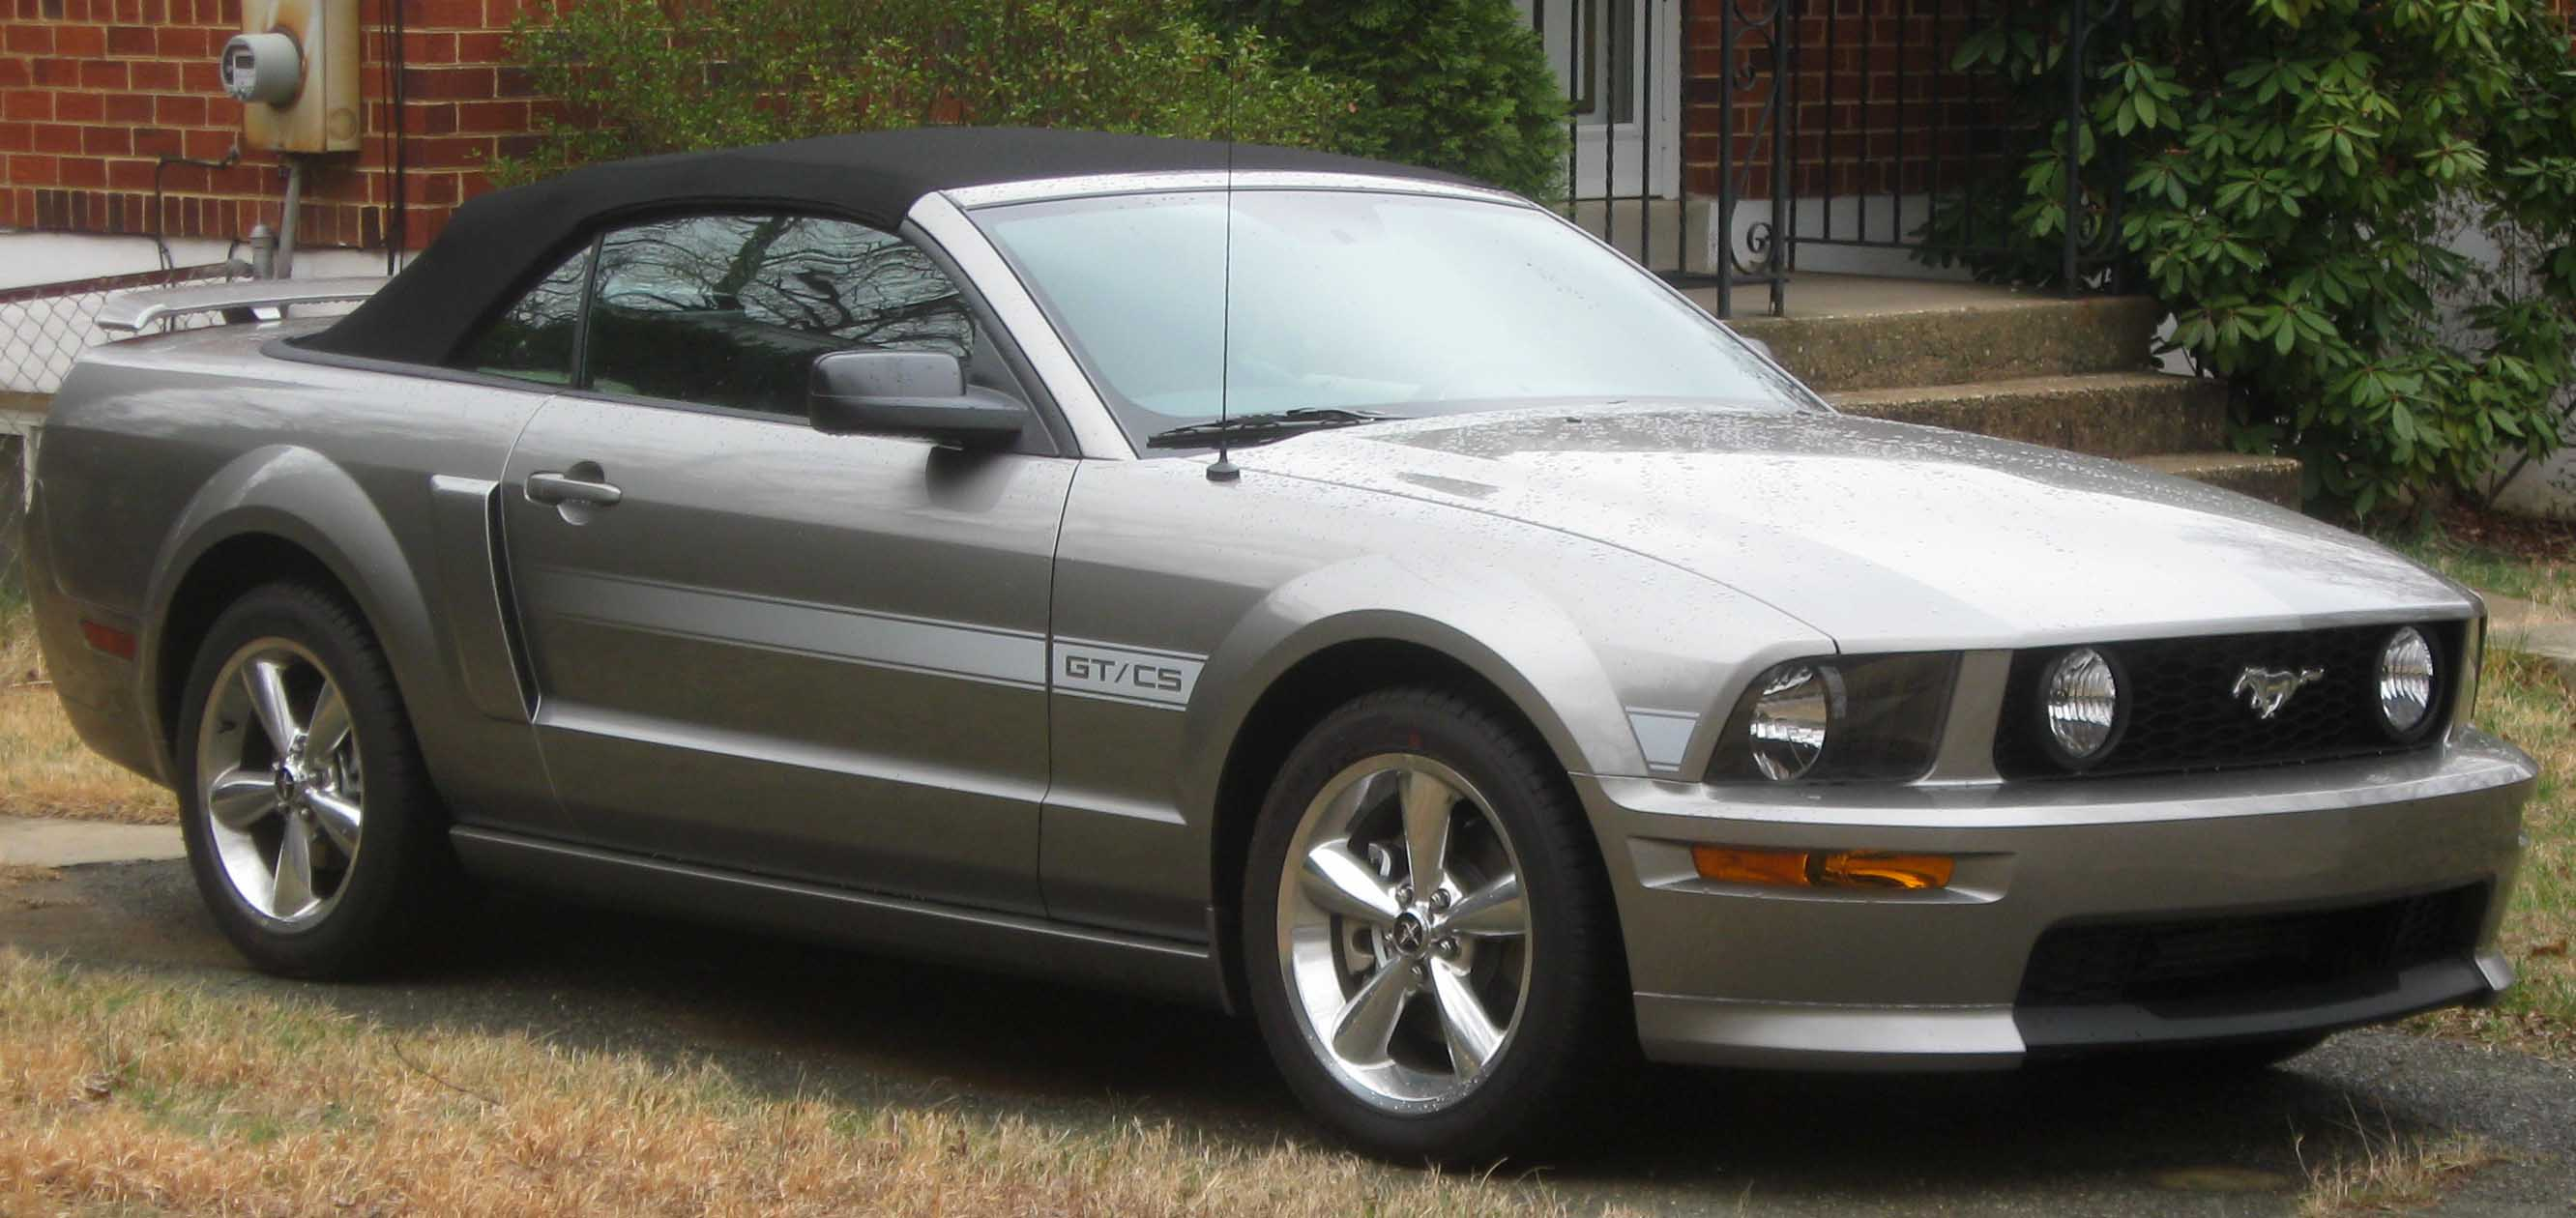 Ford Mustang IV Restyling 1998 - 2004 Cabriolet #3